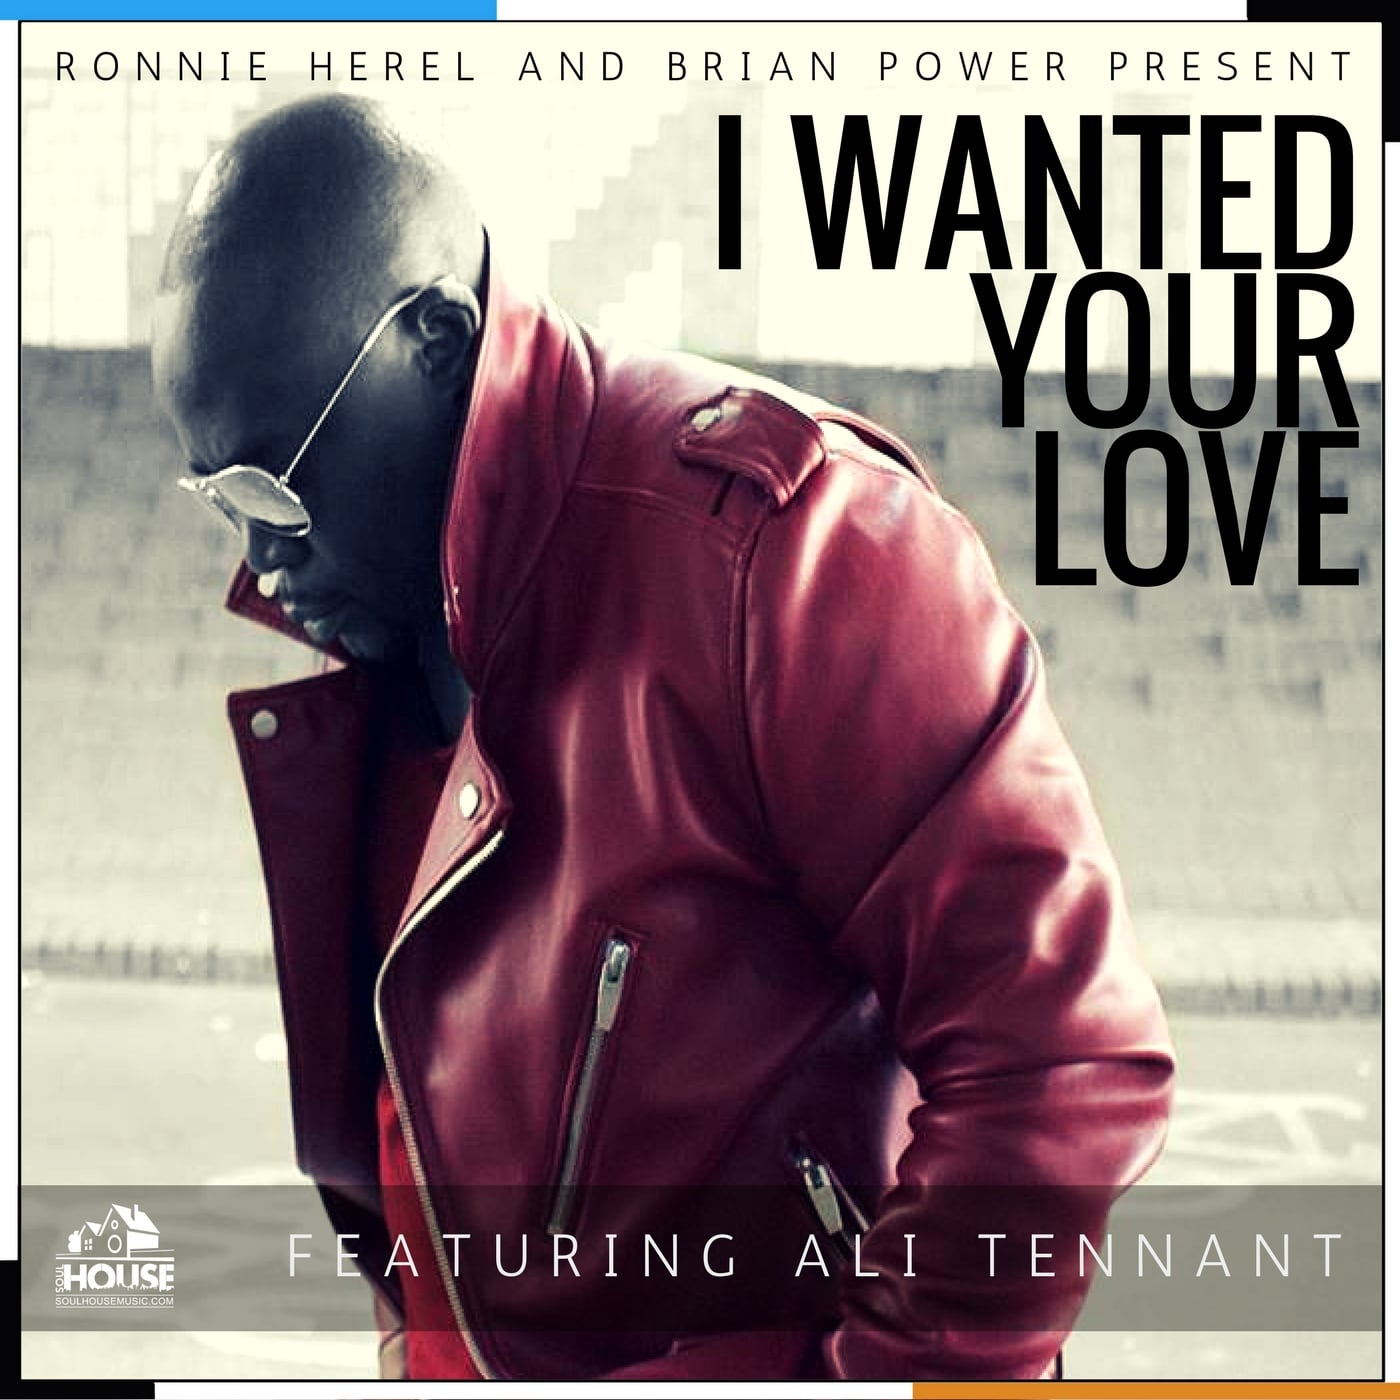 Ronnie Herel & Brian Power Present; I Wanted Your Love Featuring Ali Tennant (Original)